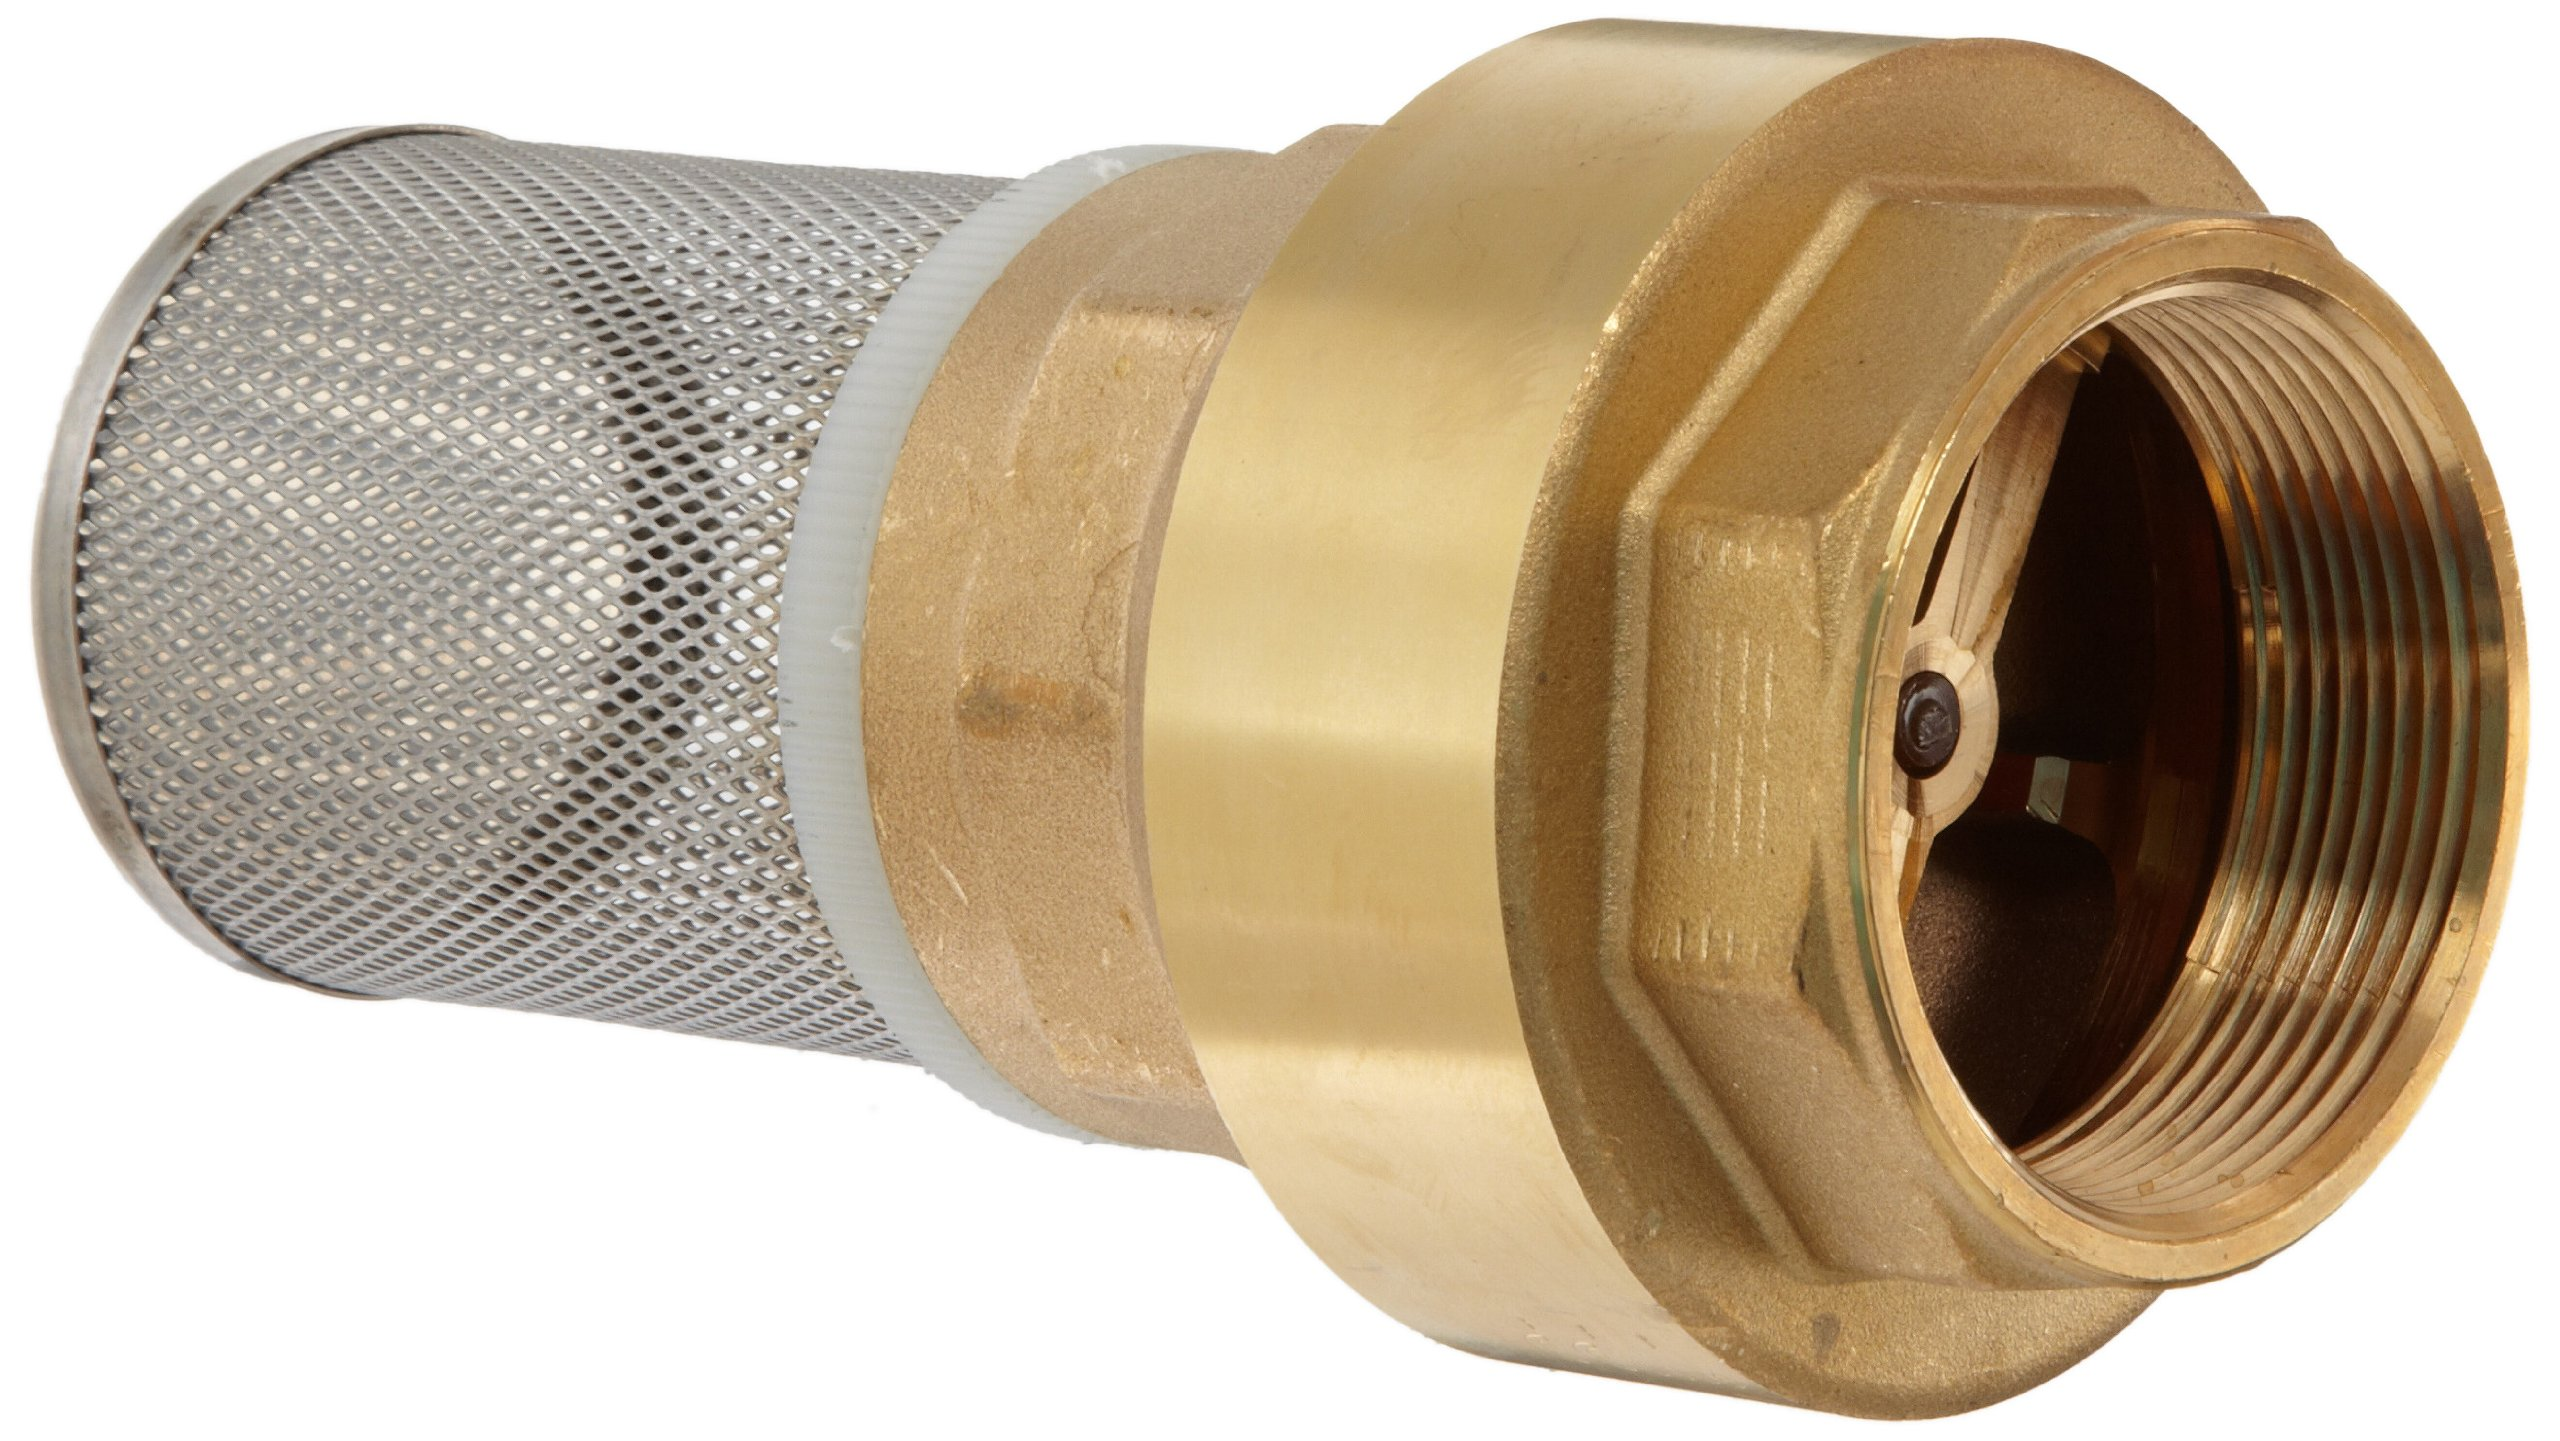 Dixon BVFS35 Brass Hose Fitting, Strainer with Spring Loaded Check Valves, 3'' Size